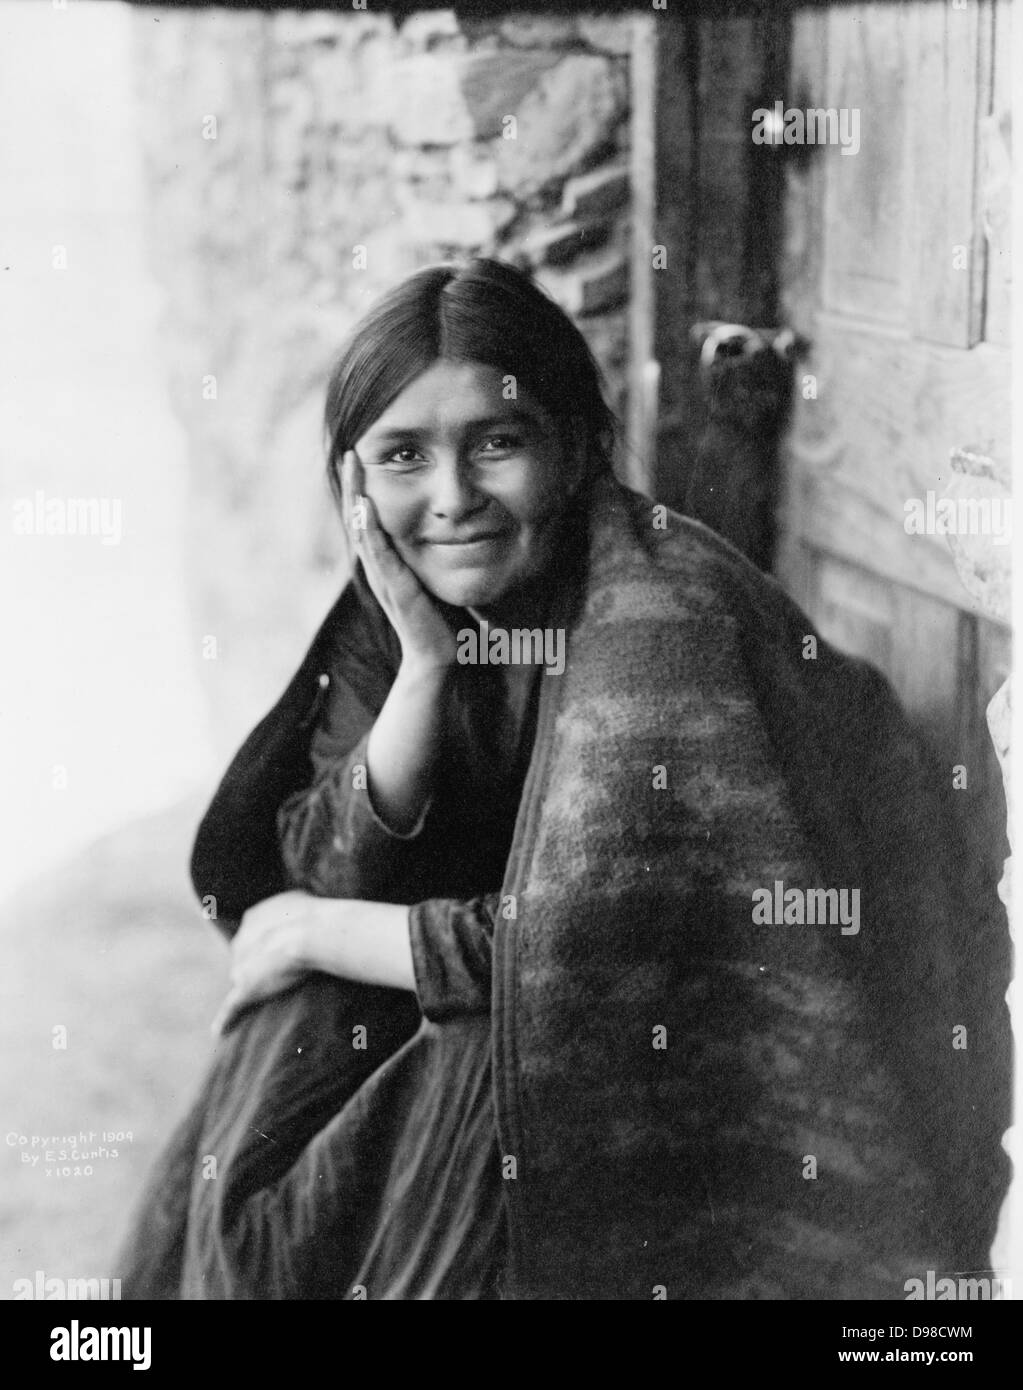 curtiss hindu single women Glenn hammond curtiss may 21, 1878  curtiss began manufacturing motorcycles with his own single-cylinder engines  who was possibly the first american woman .